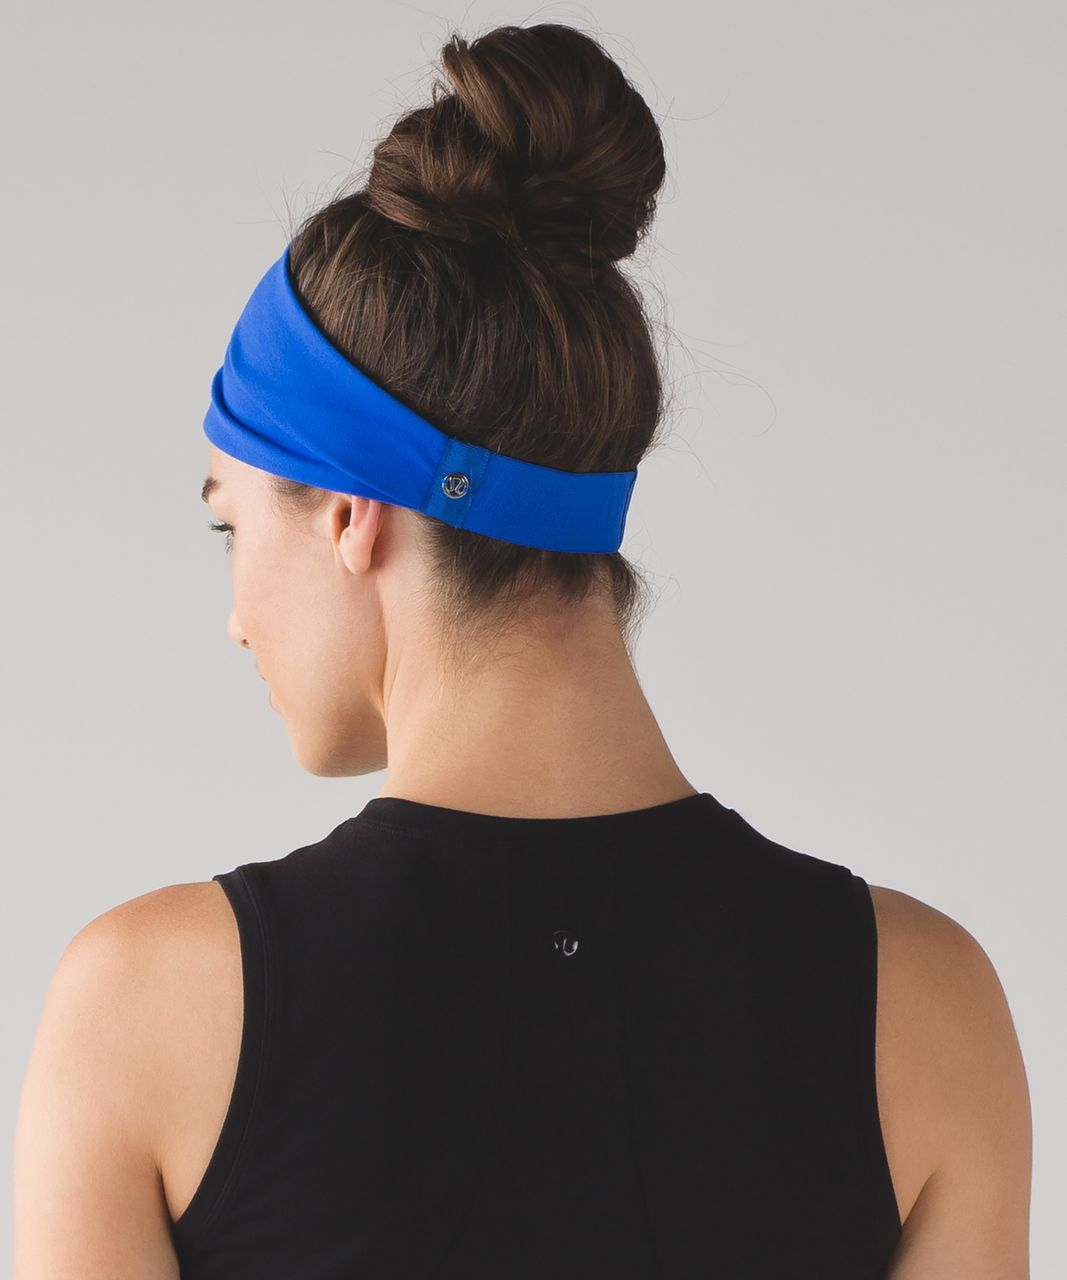 Lululemon Fringe Fighter Headband - Cerulean Blue / Heathered Black